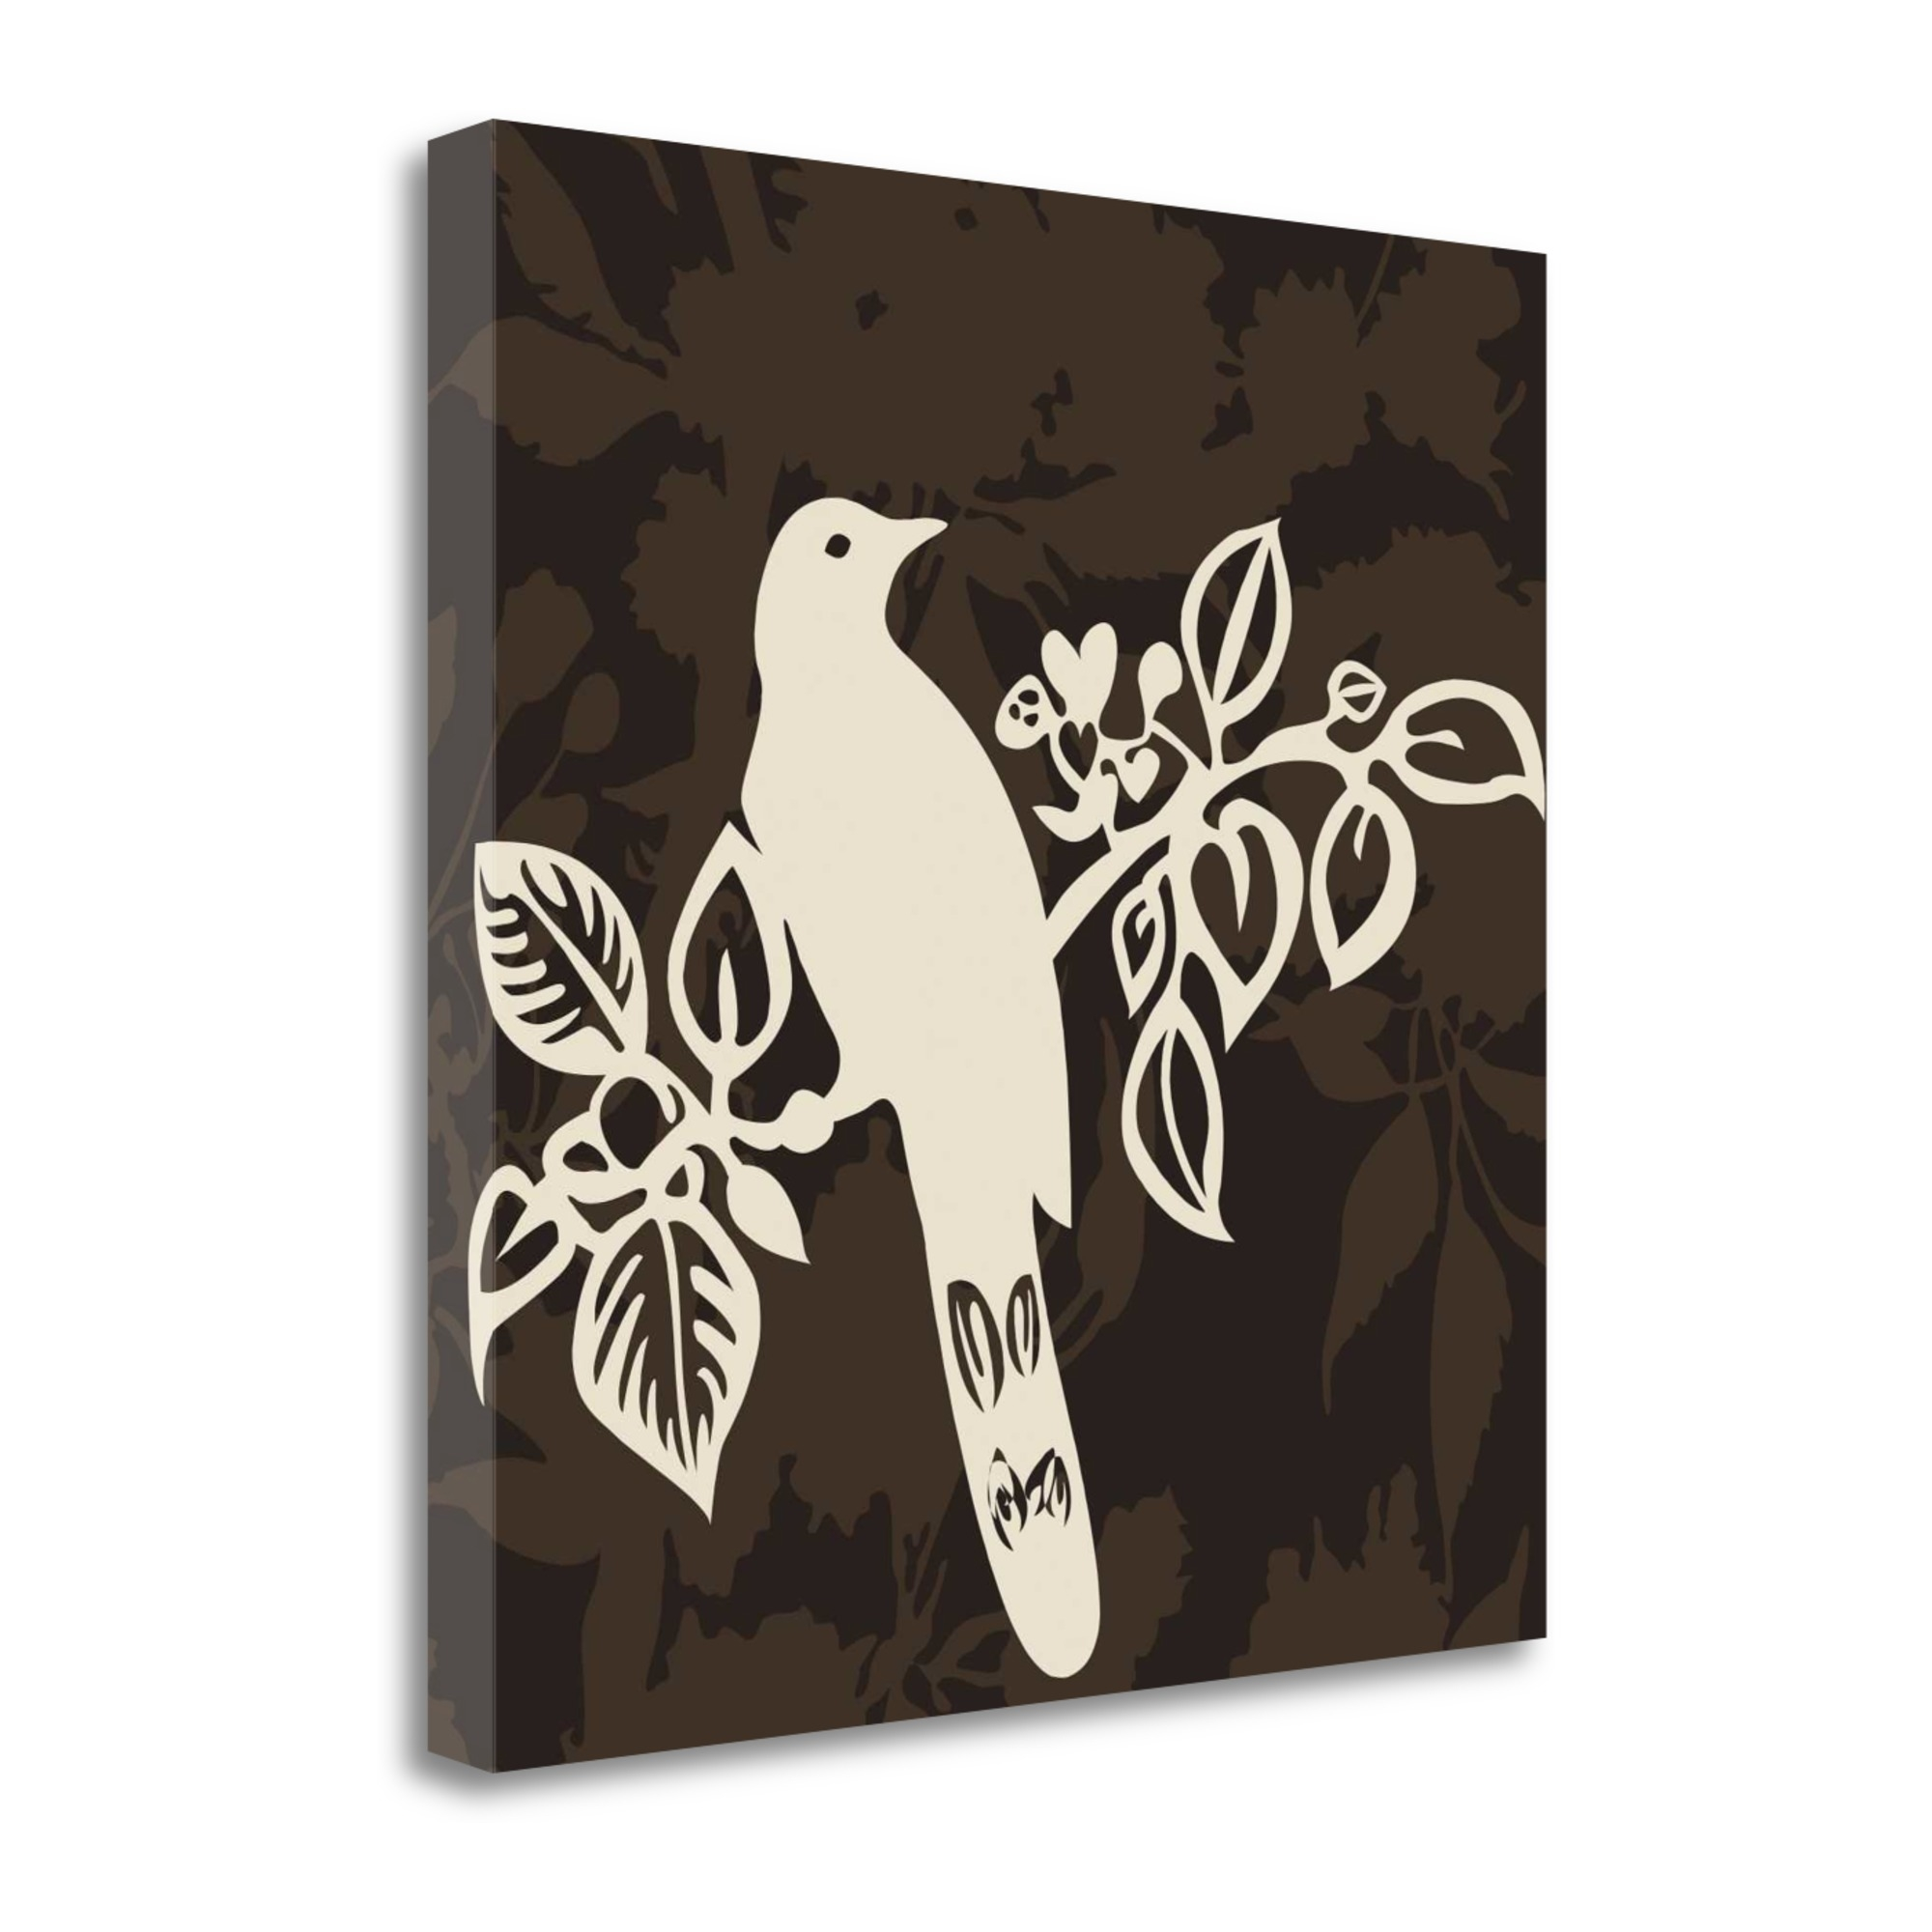 "Song Bird 2 By Jette Svane, 20"" x 20\"" Fine Art Giclee Print on Gallery Wrap Canvas, Ready to Hang"